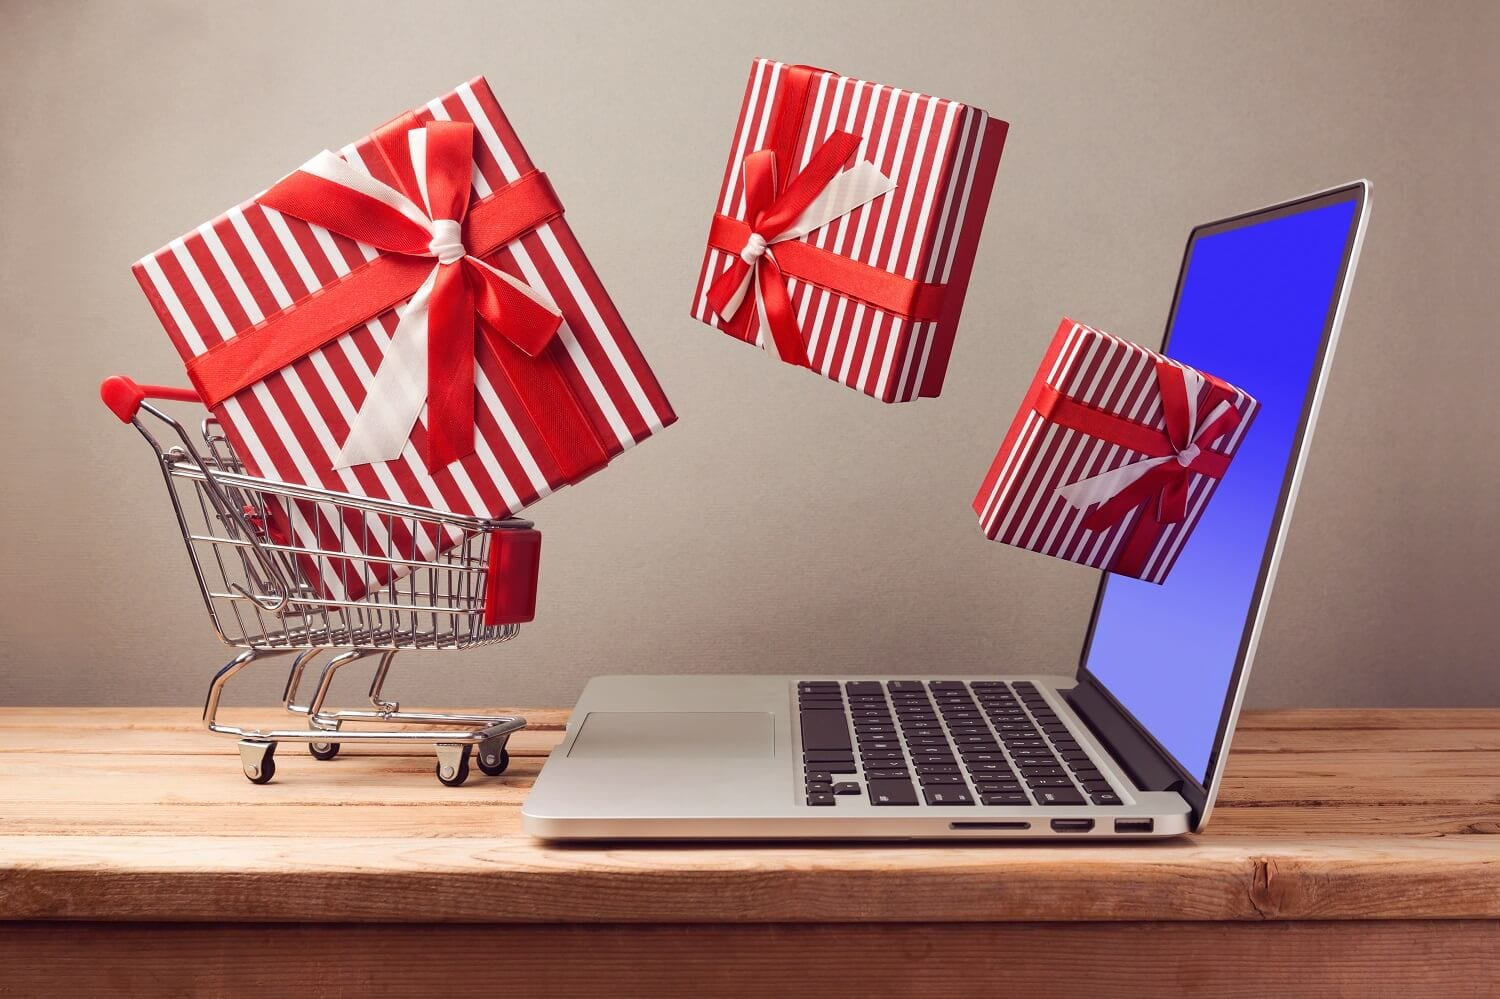 10 Cyber Monday Ideas for Your Small Business